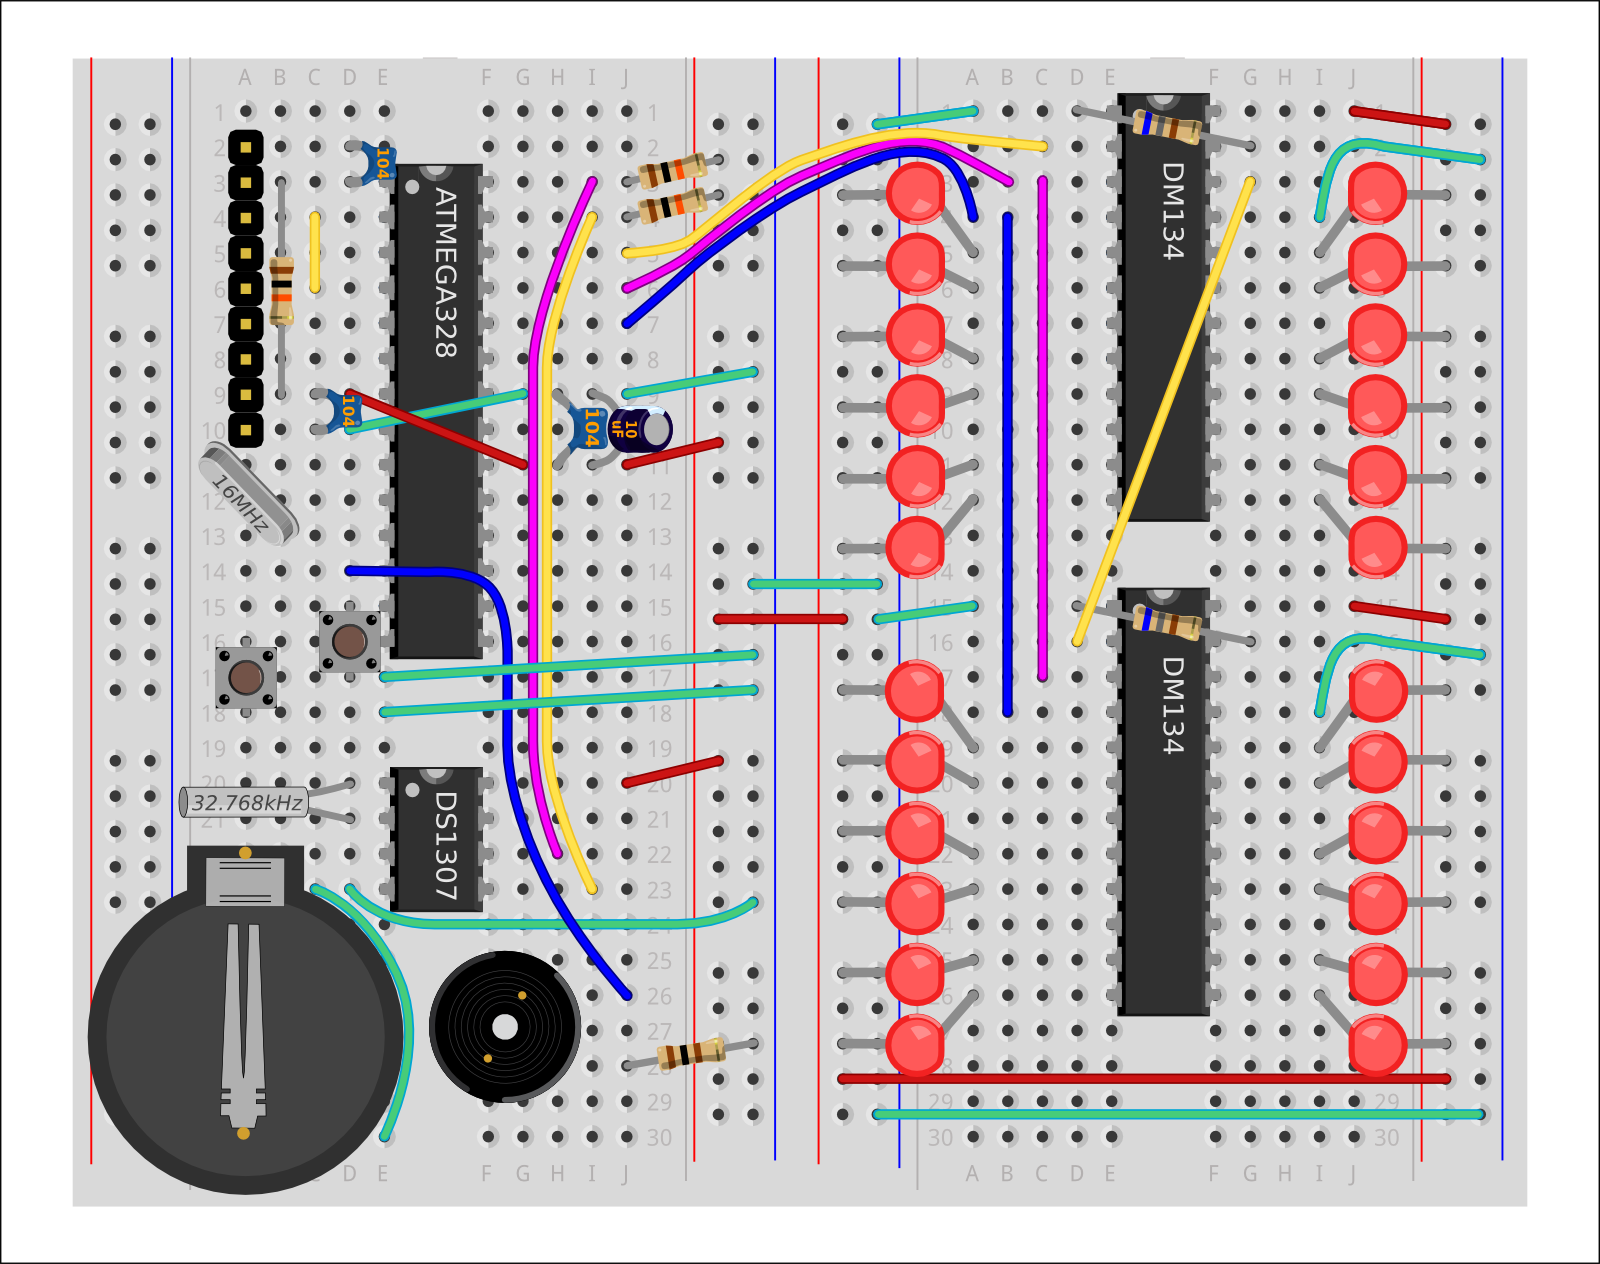 Building The Led Clock Driver Wiring Instructions This Guide Provides Details For Learners To Wire Program And Configure Their First Shrimpingit Digital Project It Incorporates Two Chips